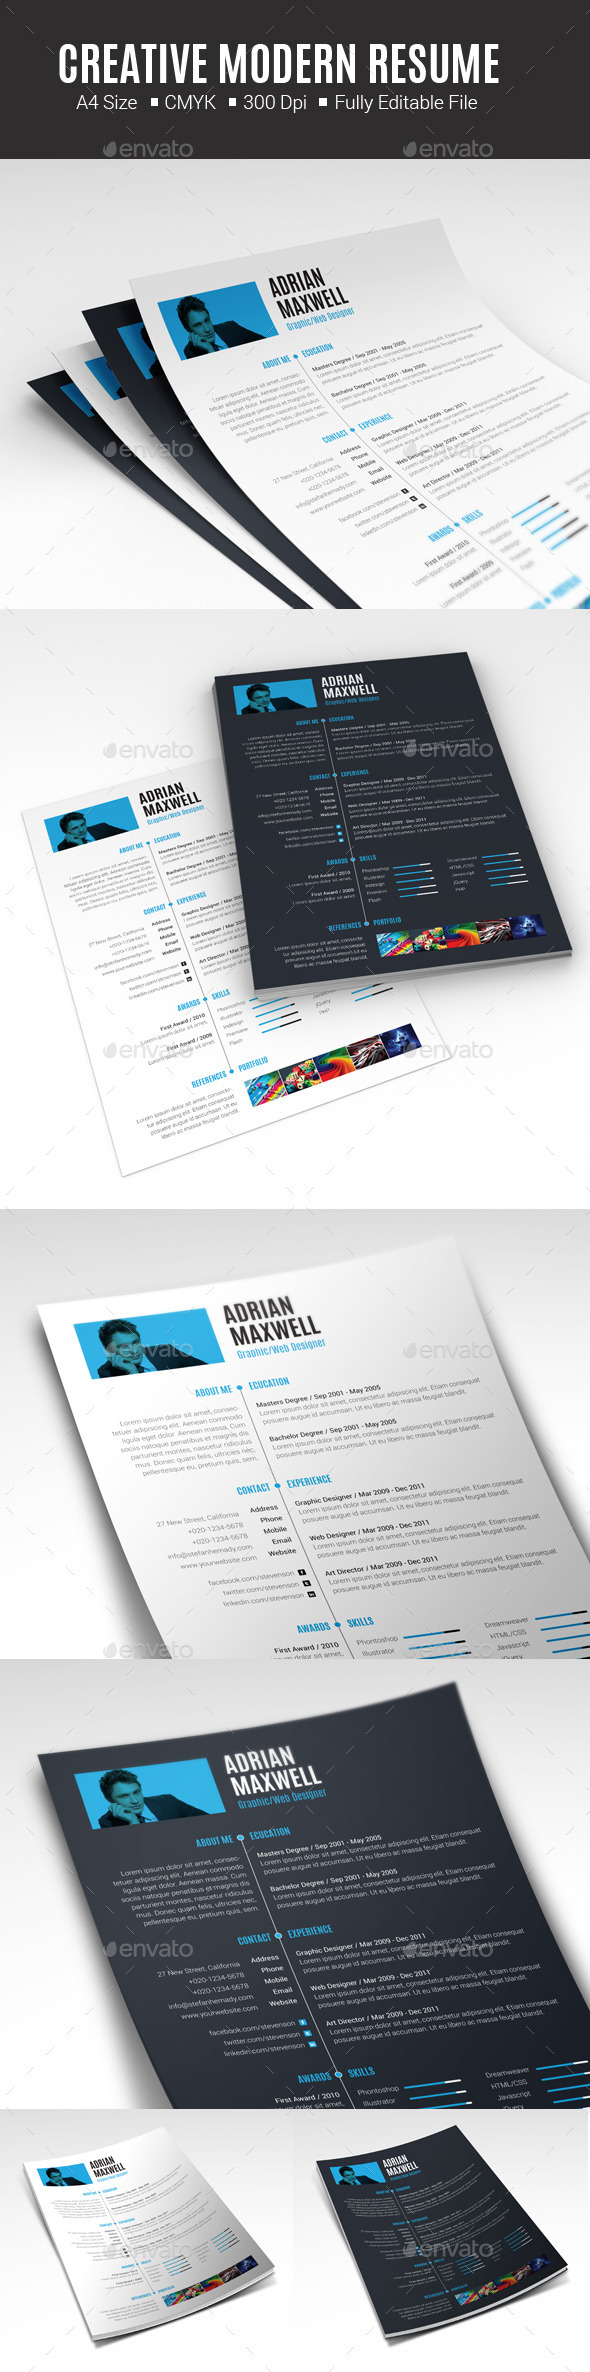 GraphicRiver Creative Modern Resume 10475934